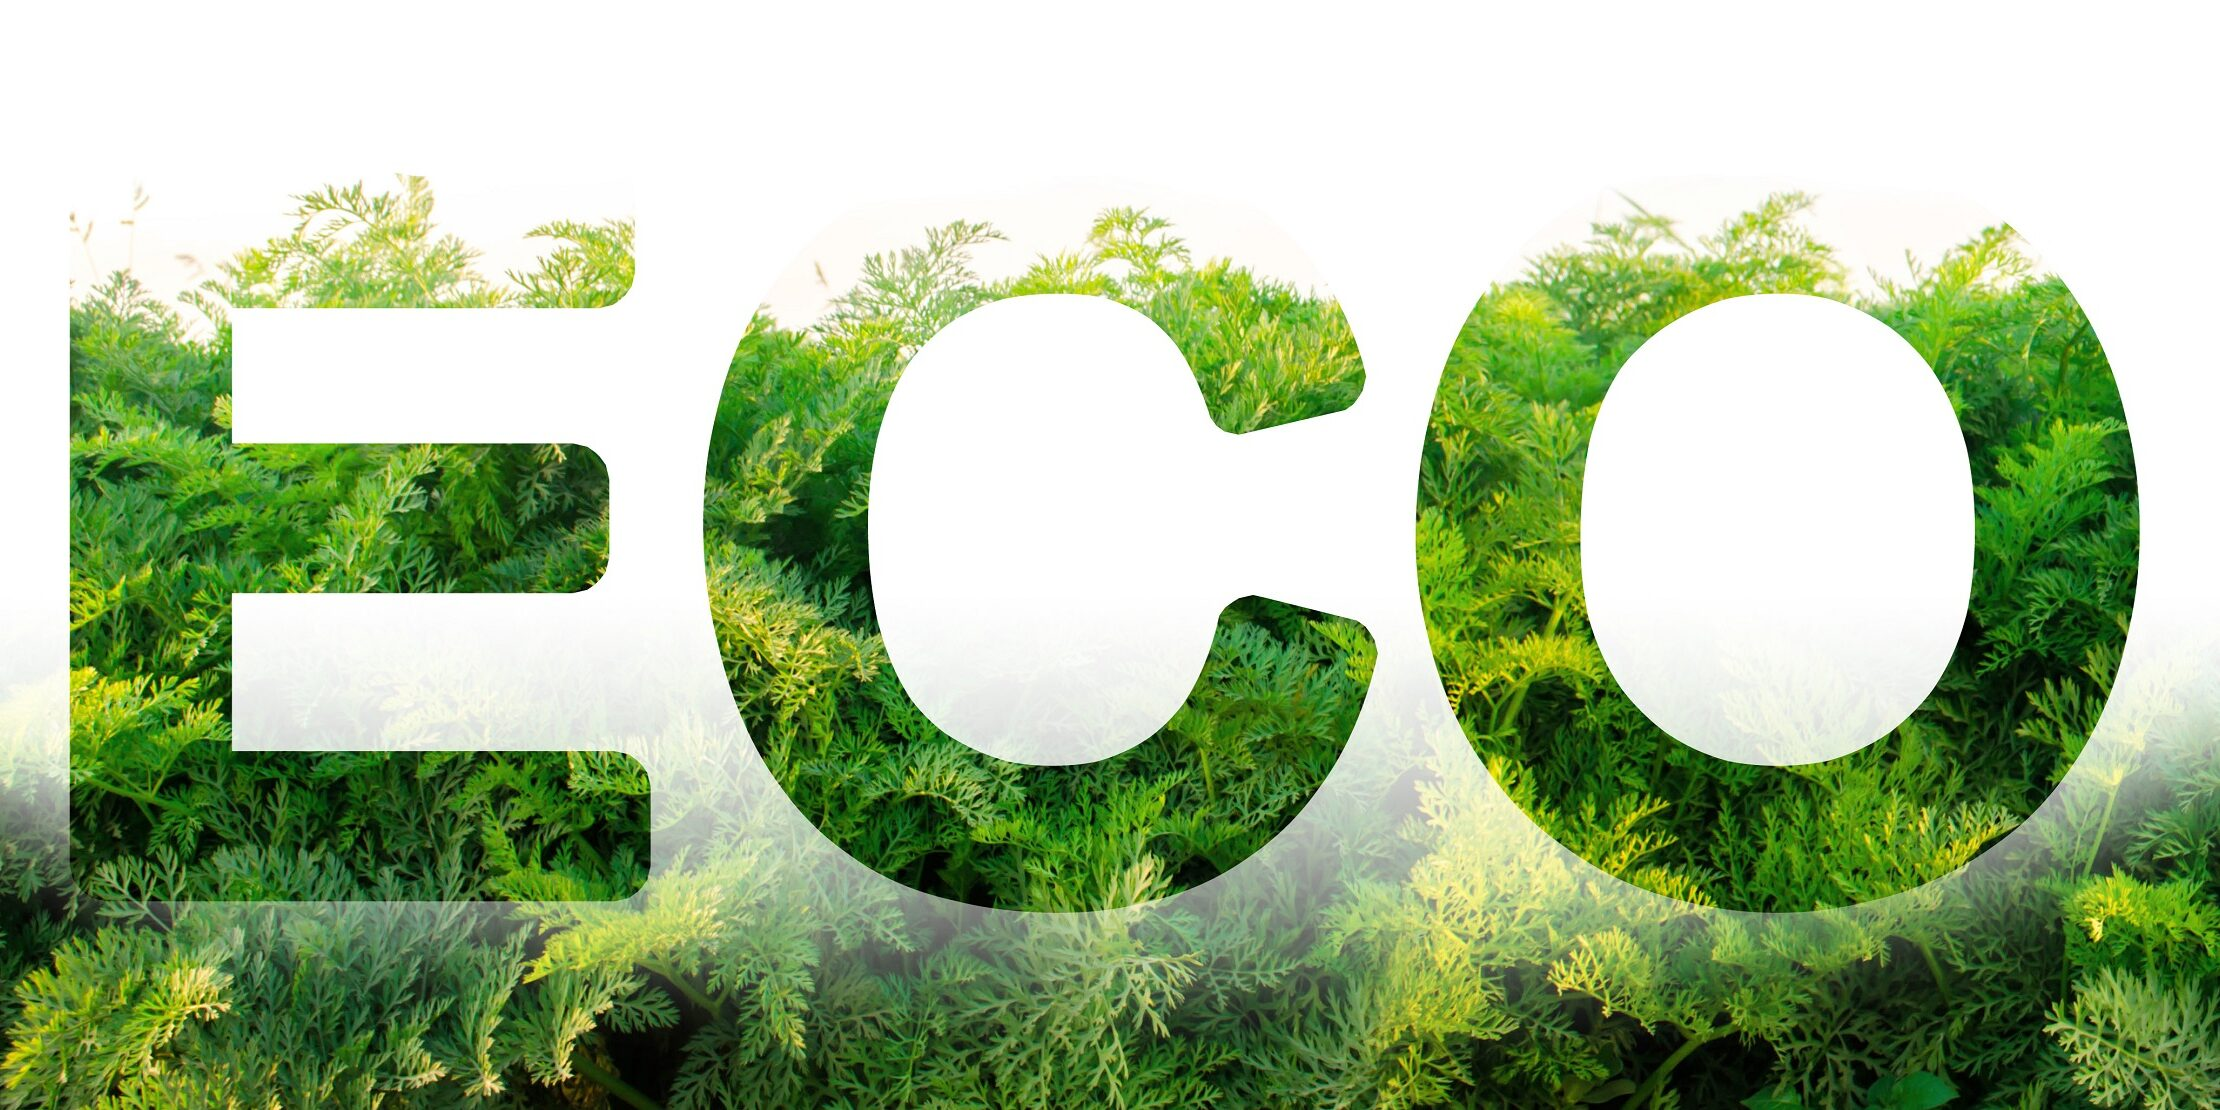 Eco word on the background of green leaves of carrots. plantation. Agriculture. harvest. Environmentally friendly, climate change, quality control, use safe pesticides. Organic vegetables.